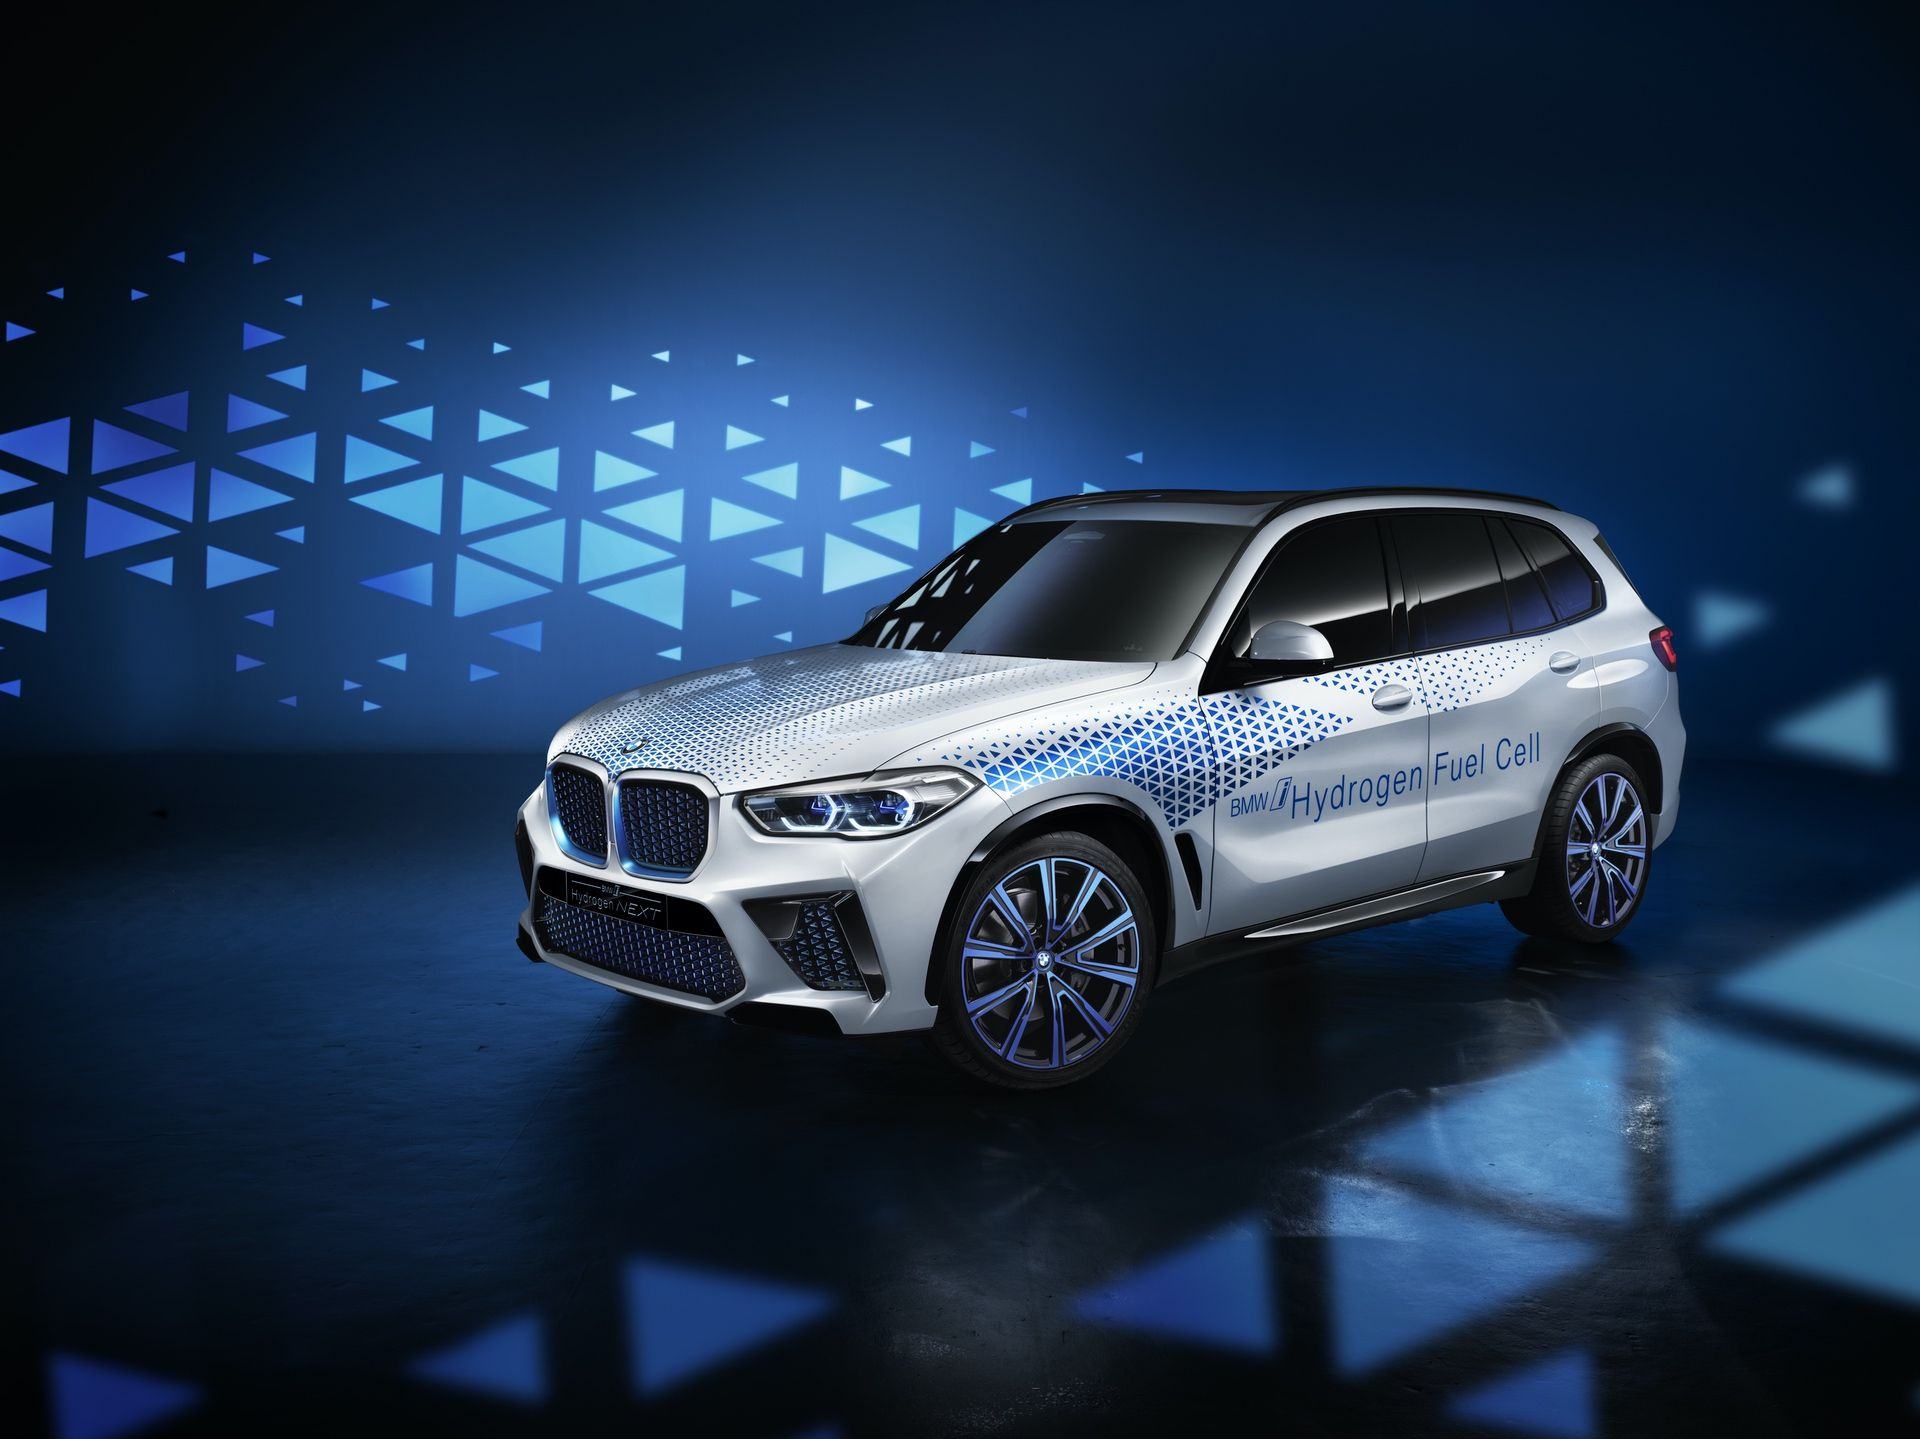 Fuel Cell Powered Bmw X6 And X7 Models Coming In A Few Years In 2020 Bmw Bmw I Fuel Cell